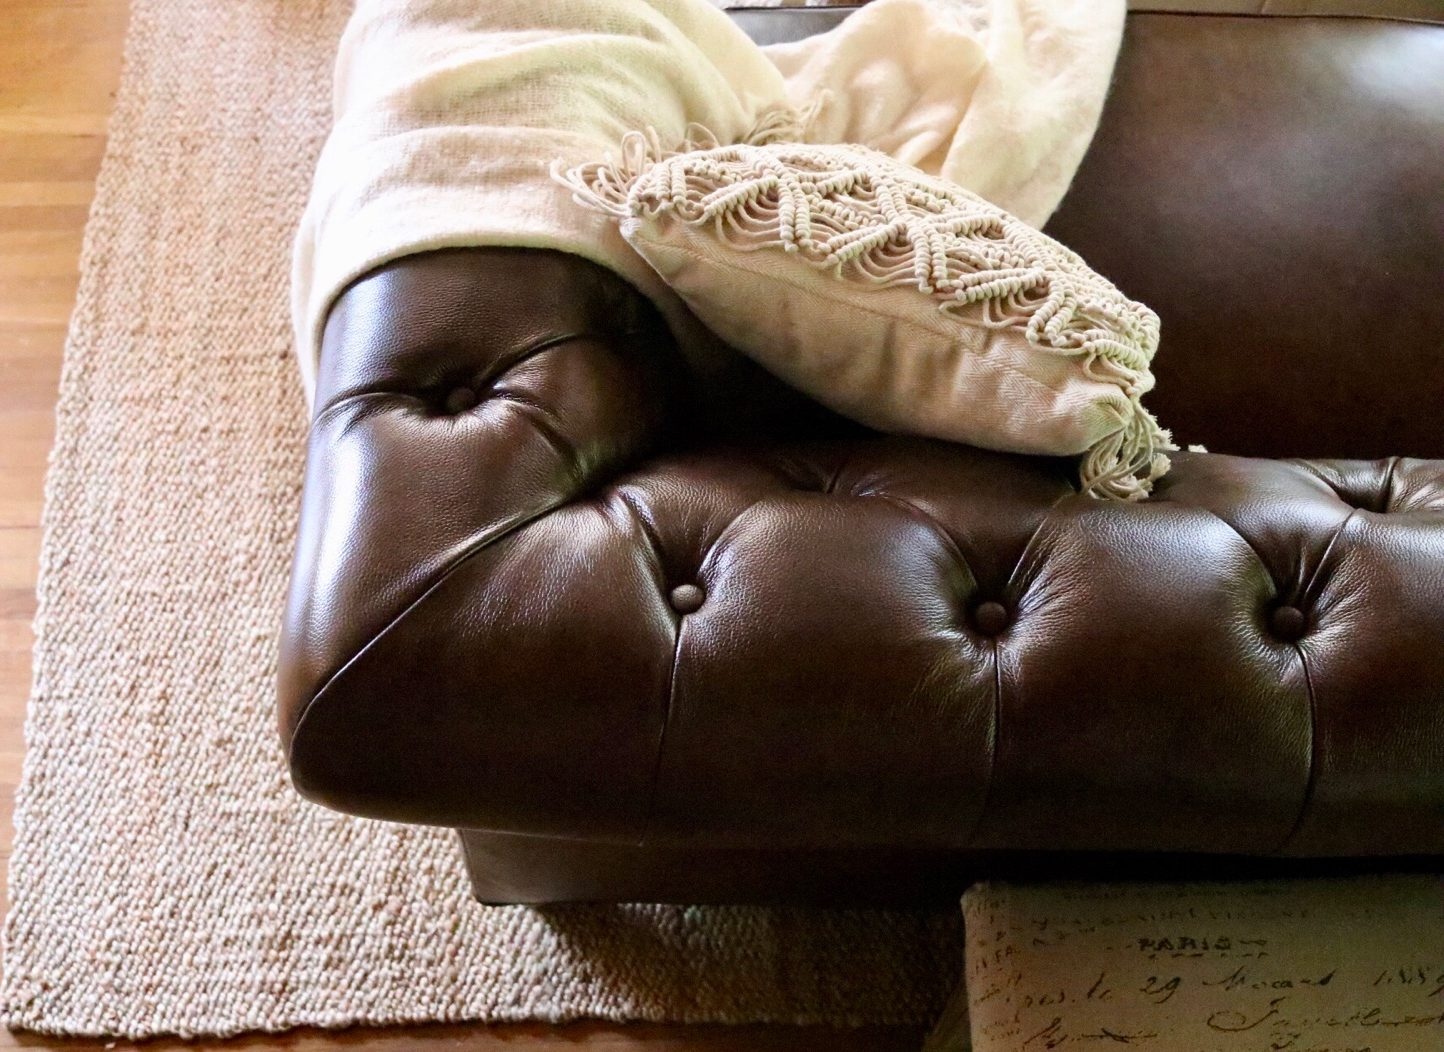 Brown leather chesterfield sofa boho pillow macrame pillow throw jute area rug from Soft Surroundings